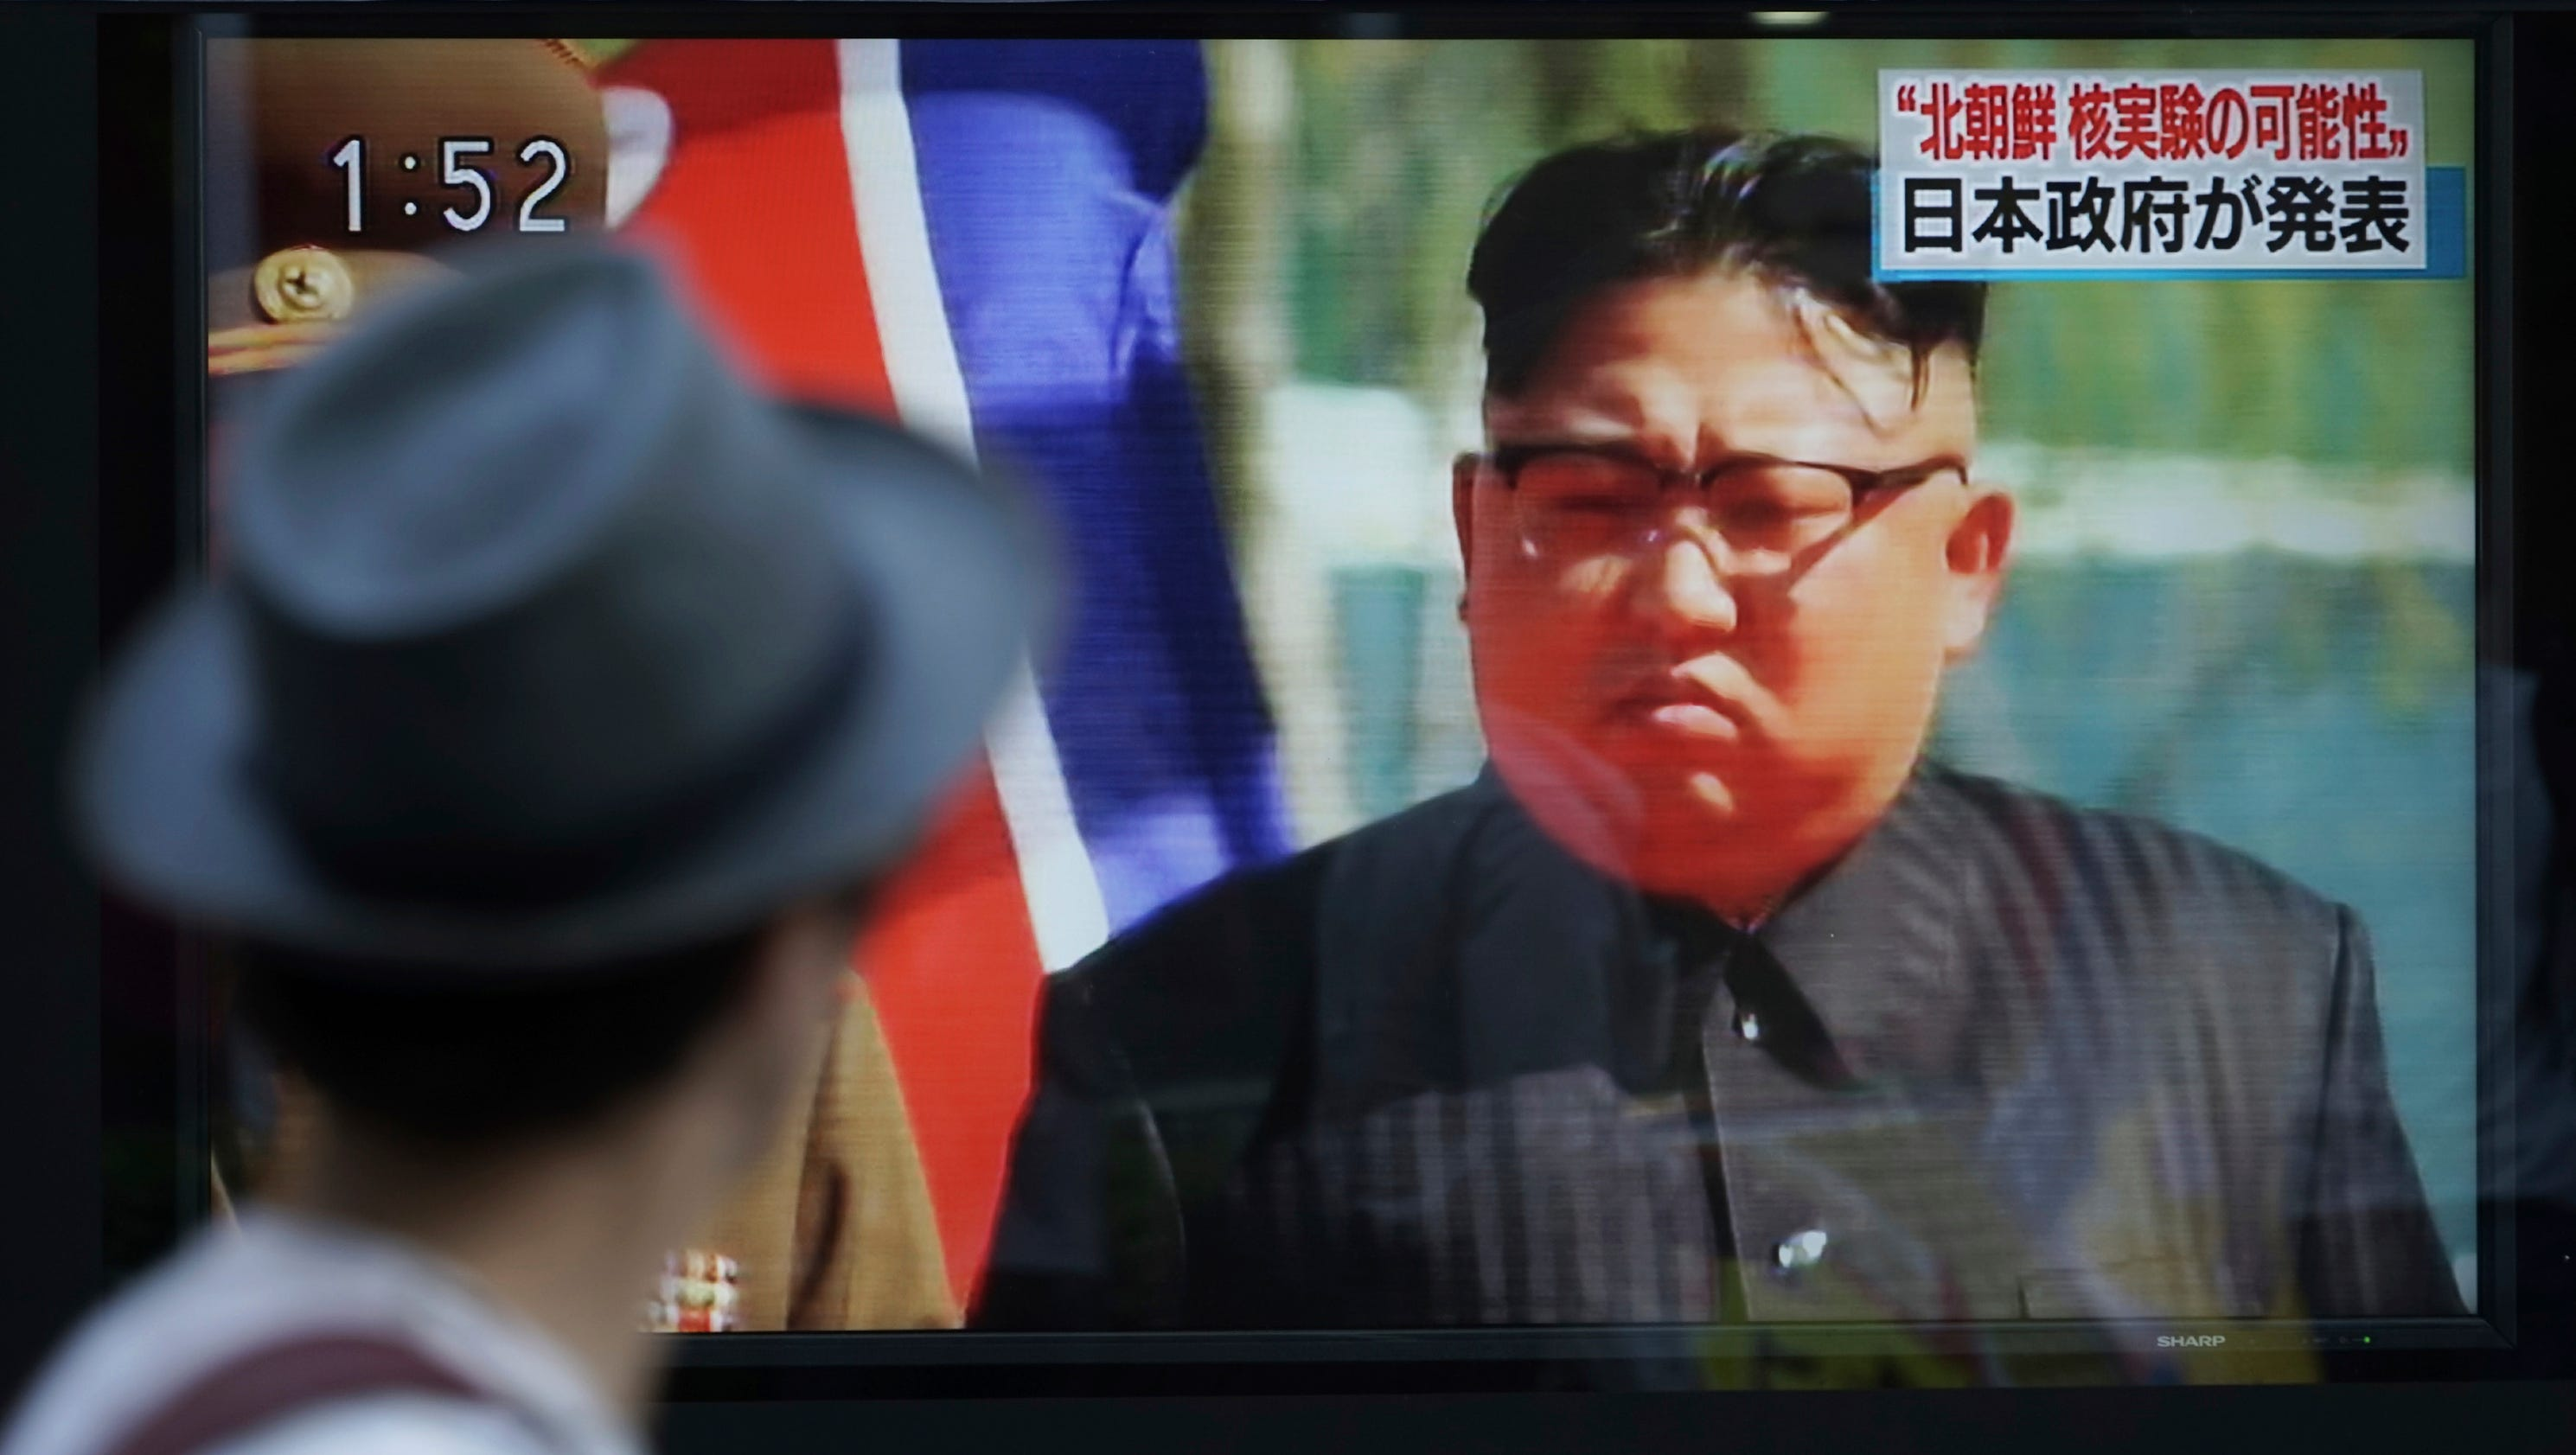 South Korea's creating a special military unit to assassinate Kim Jong Un